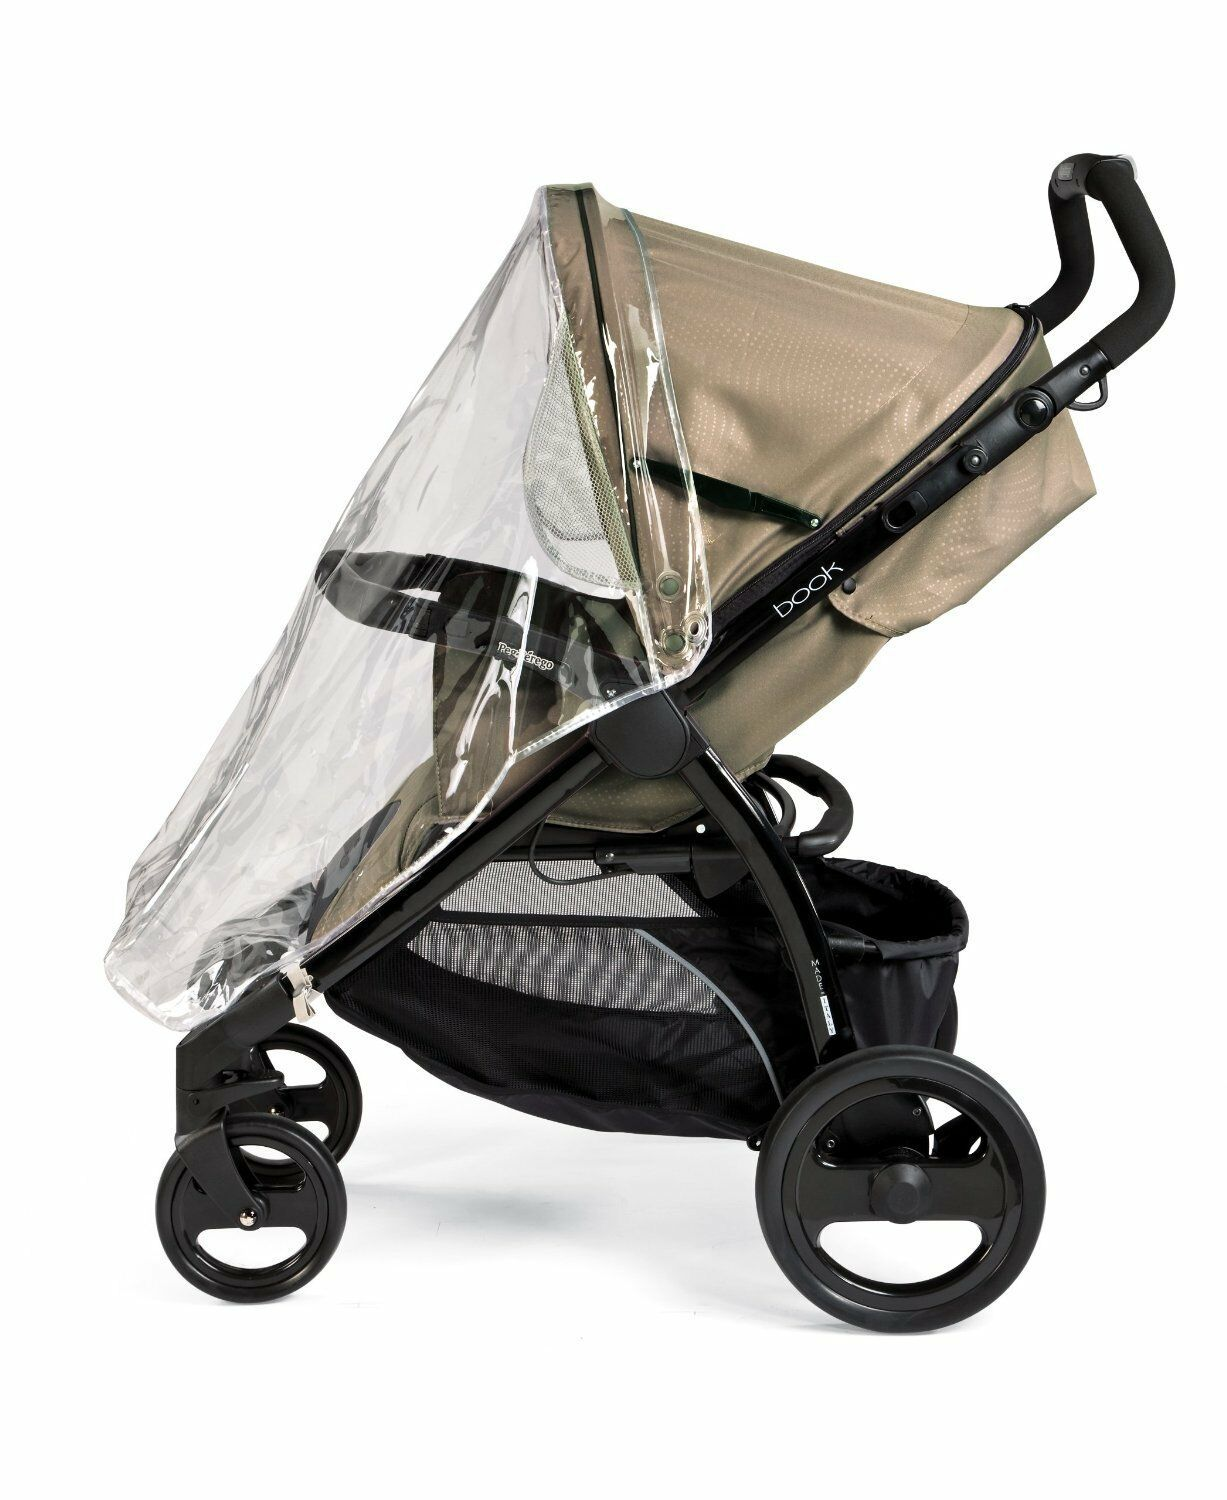 Details about Peg Perego Stroller Rain Cover New (With